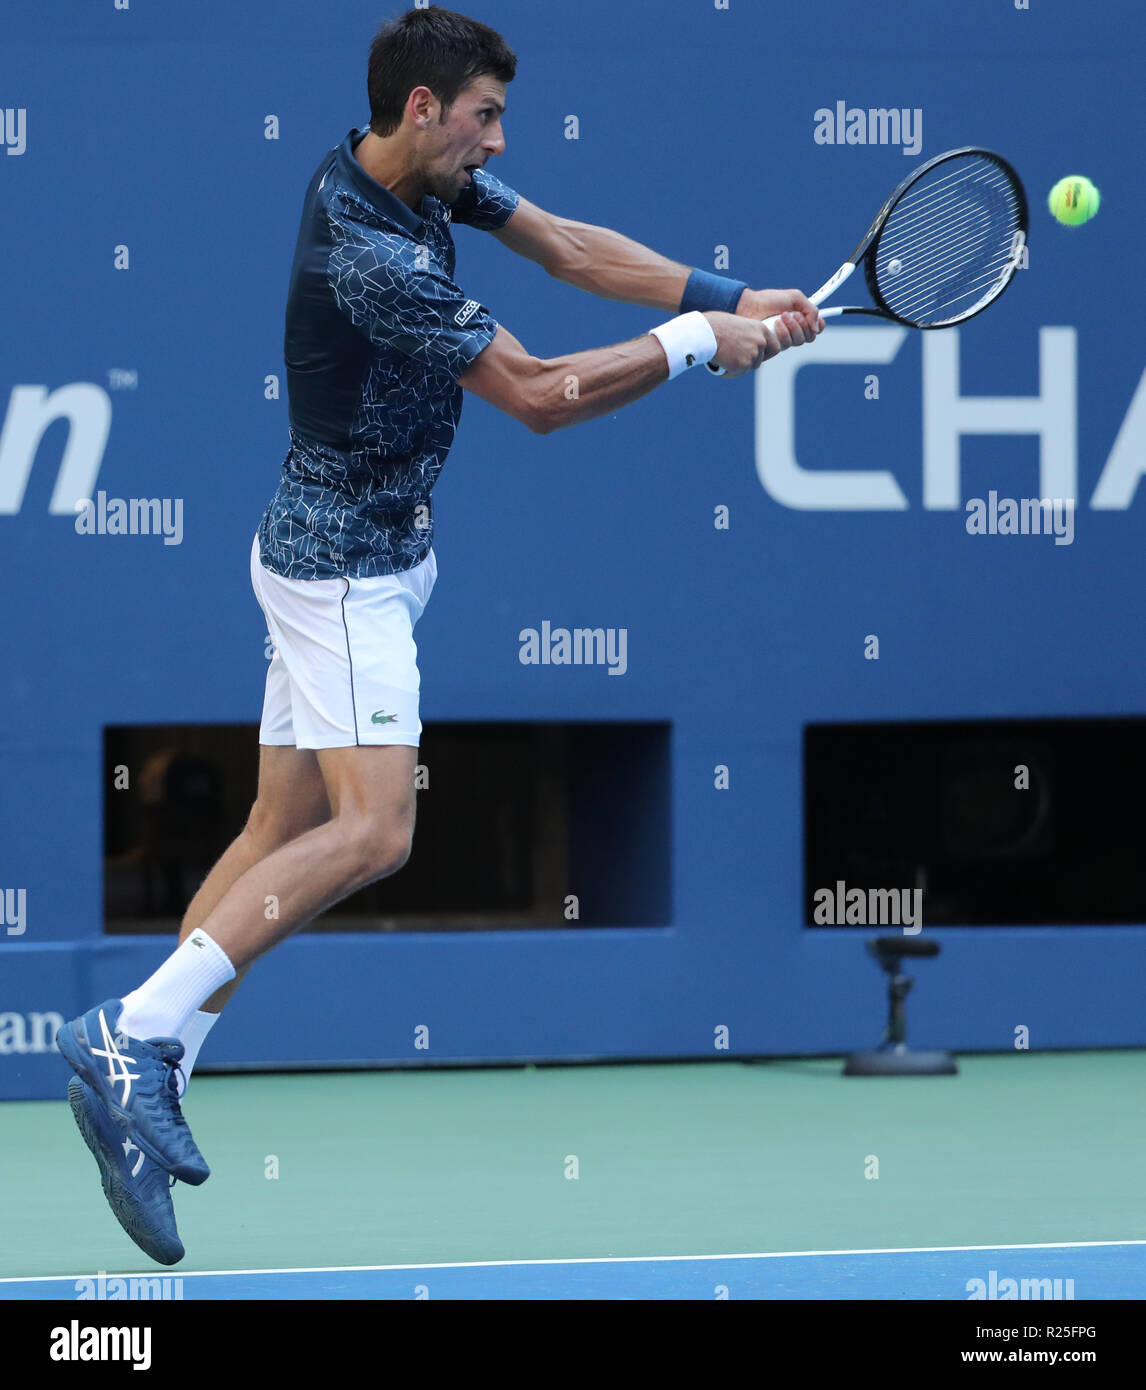 13-time Grand Slam champion Novak Djokovic of Serbia in action during his 2018 US Open round of 16 match at Billie Jean King National Tennis Center - Stock Image